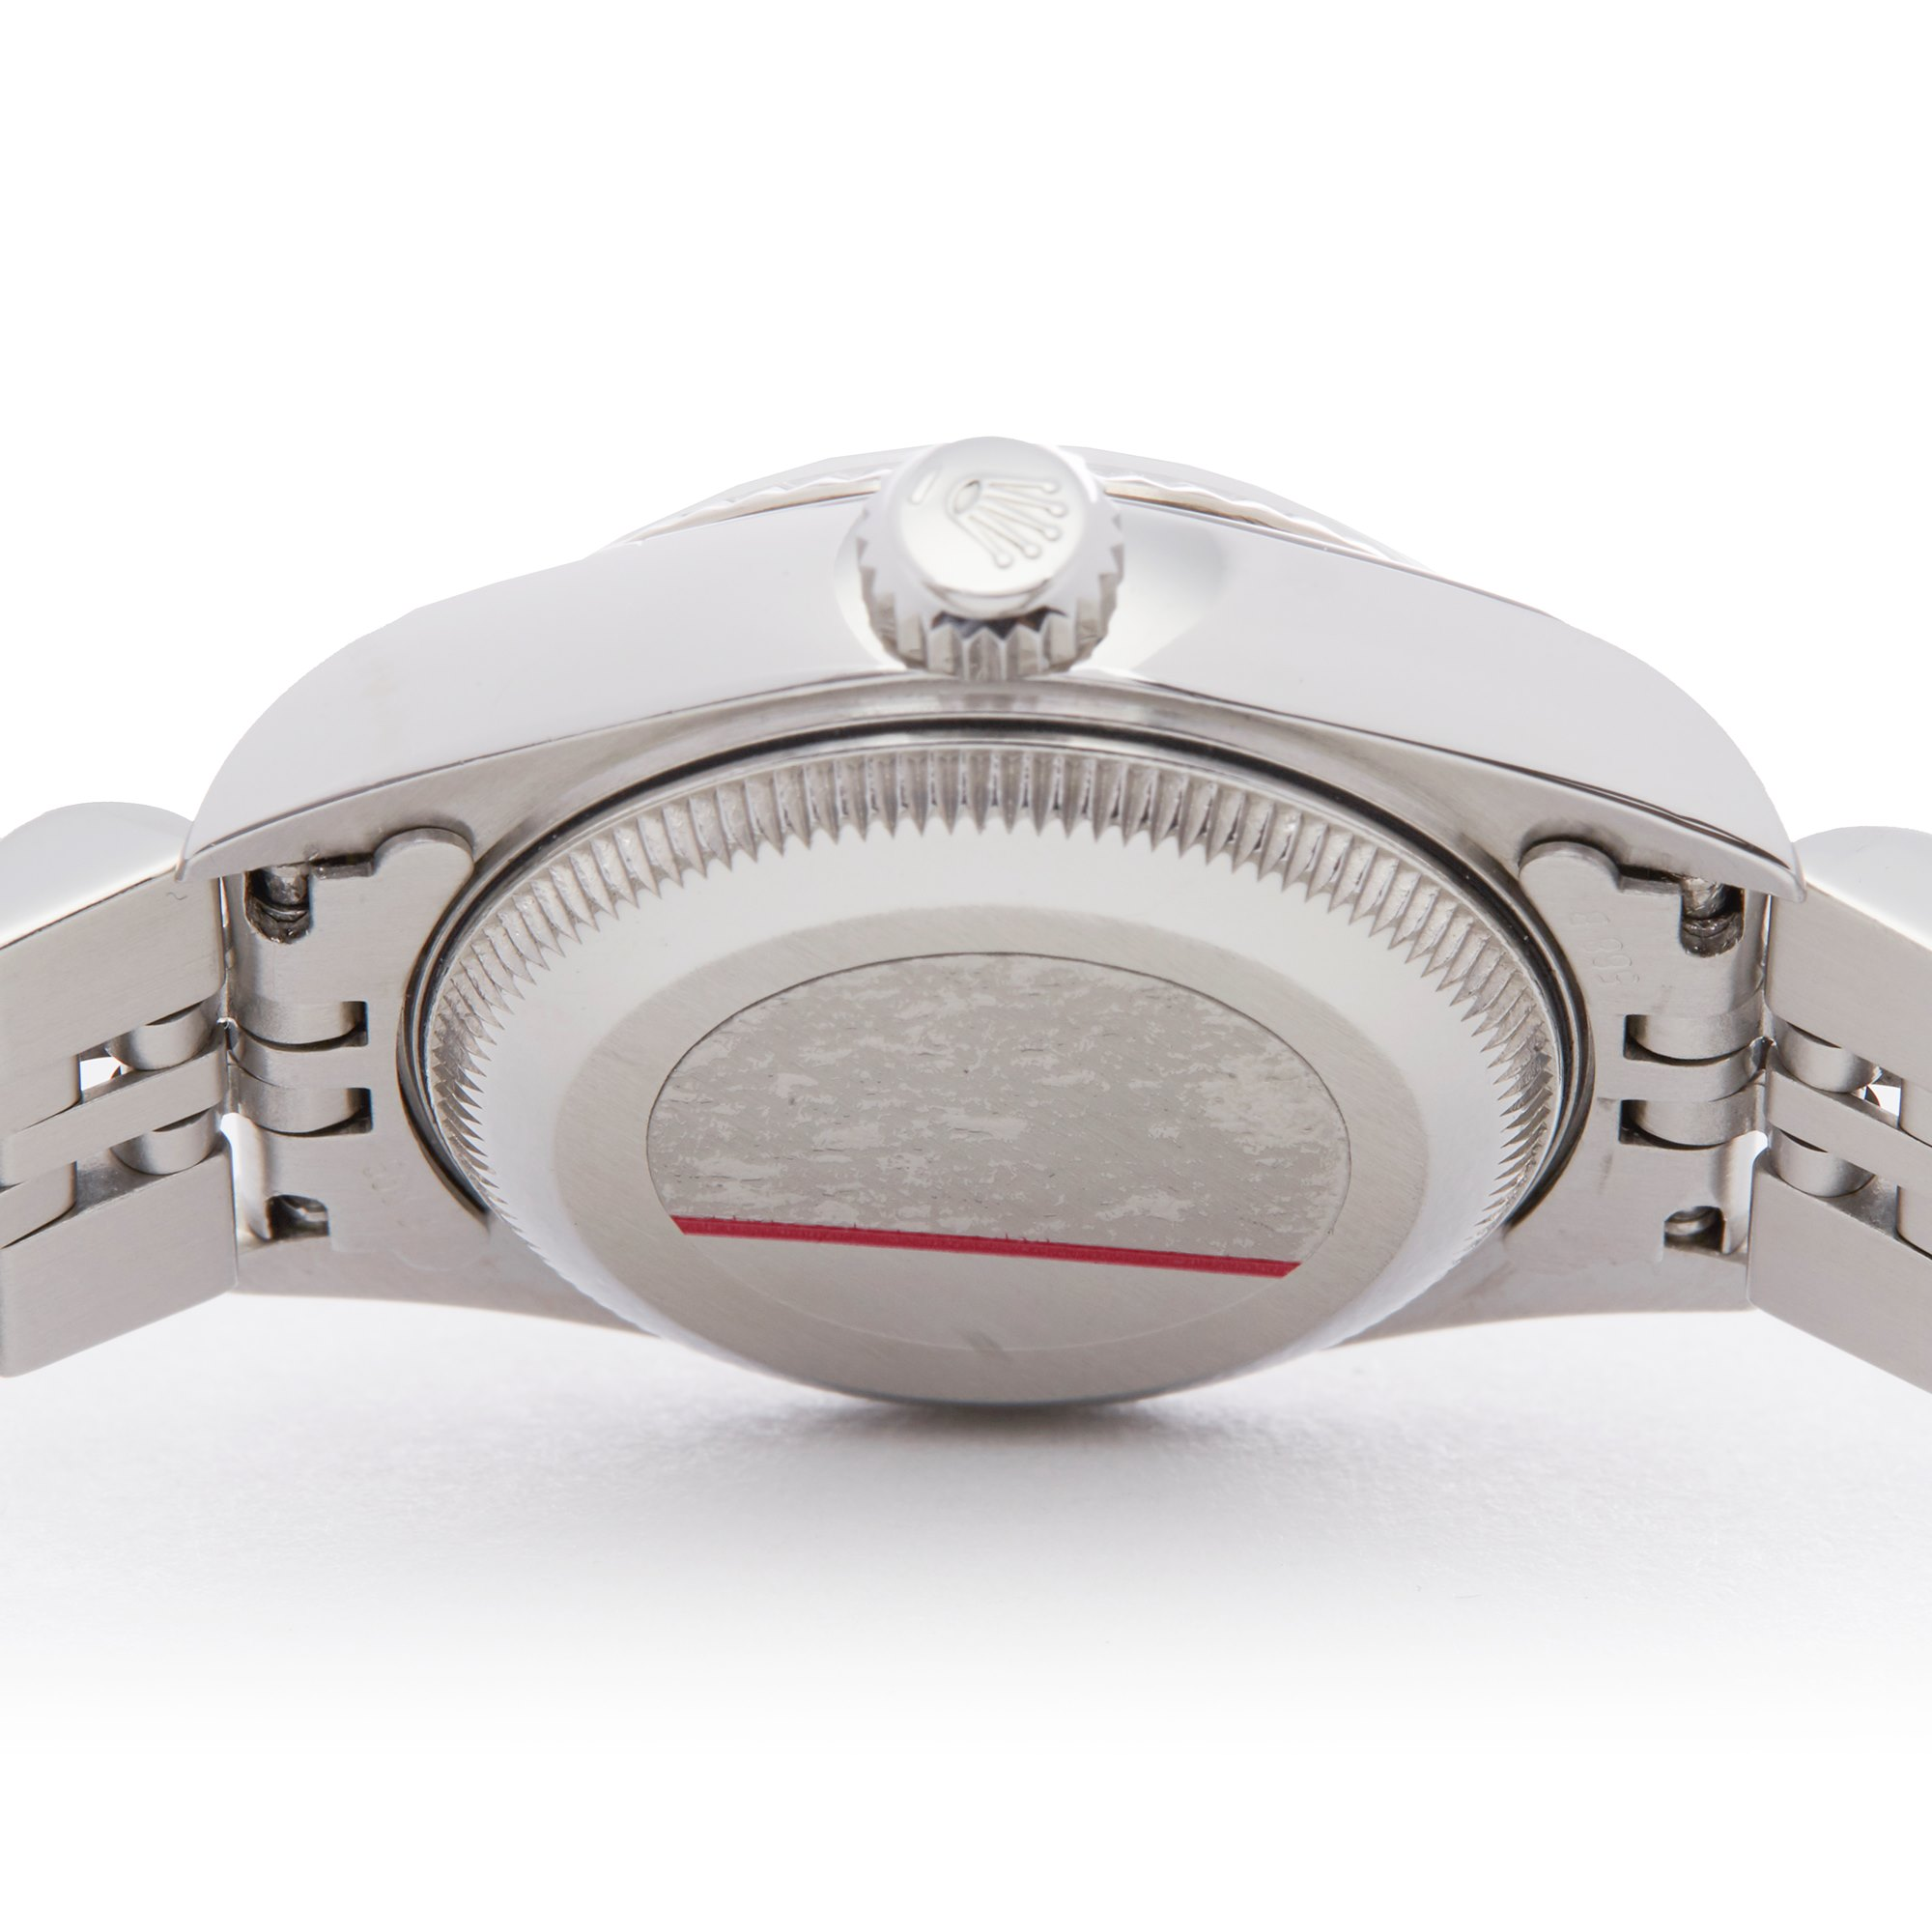 Rolex Datejust 26 69174 Ladies Stainless Steel Watch - Image 8 of 8